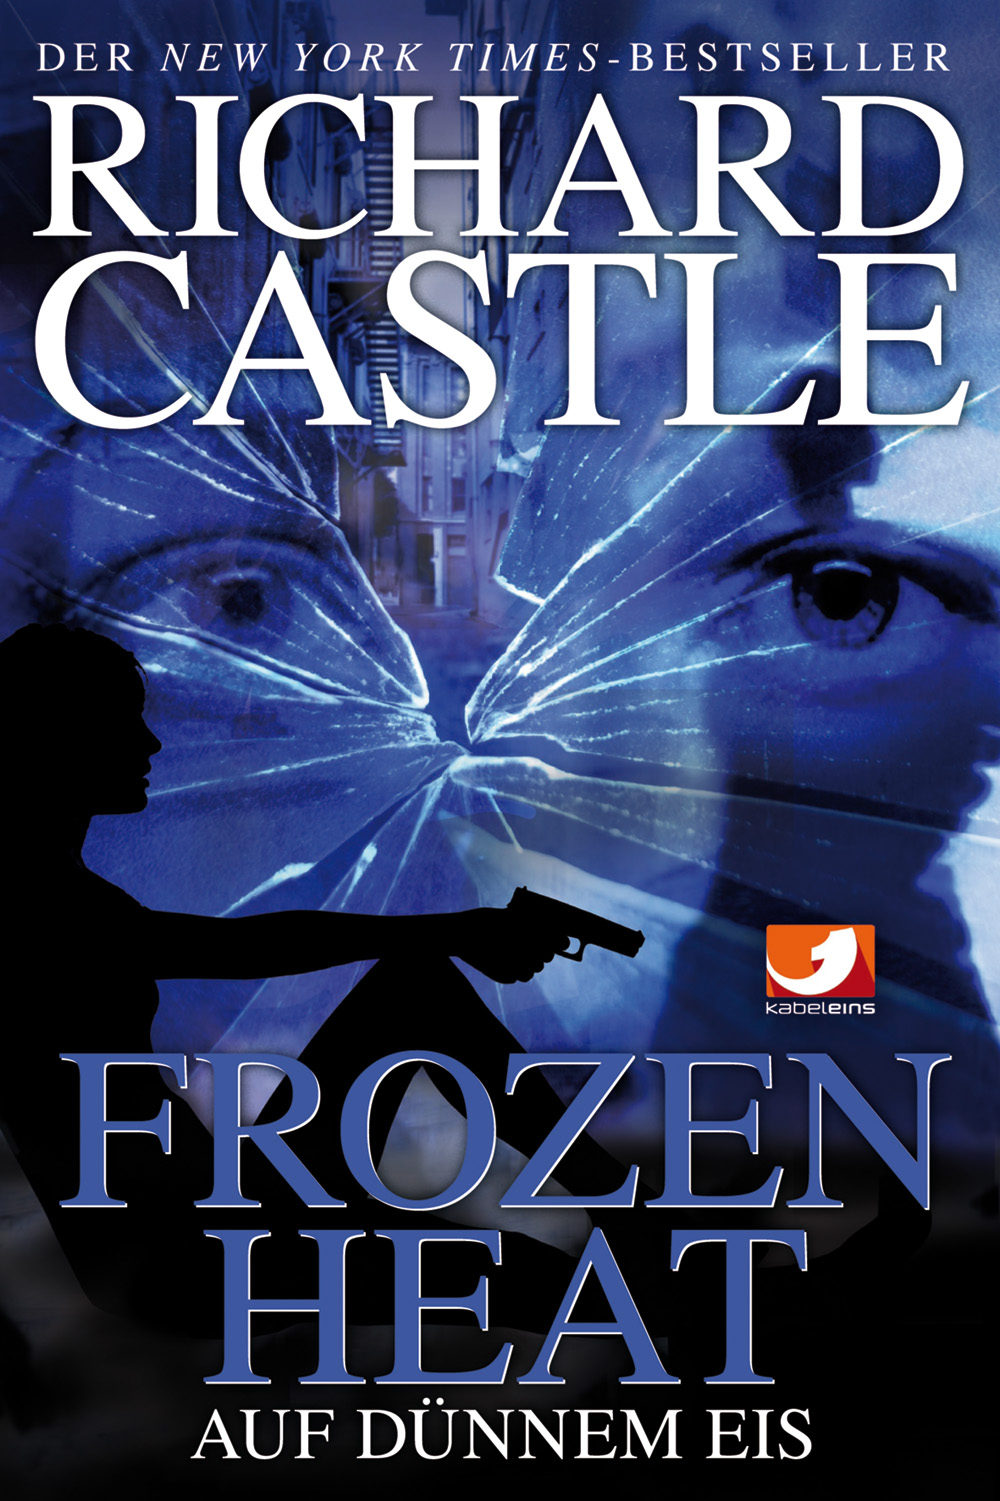 Frozen Heat Richard Castle Pdf